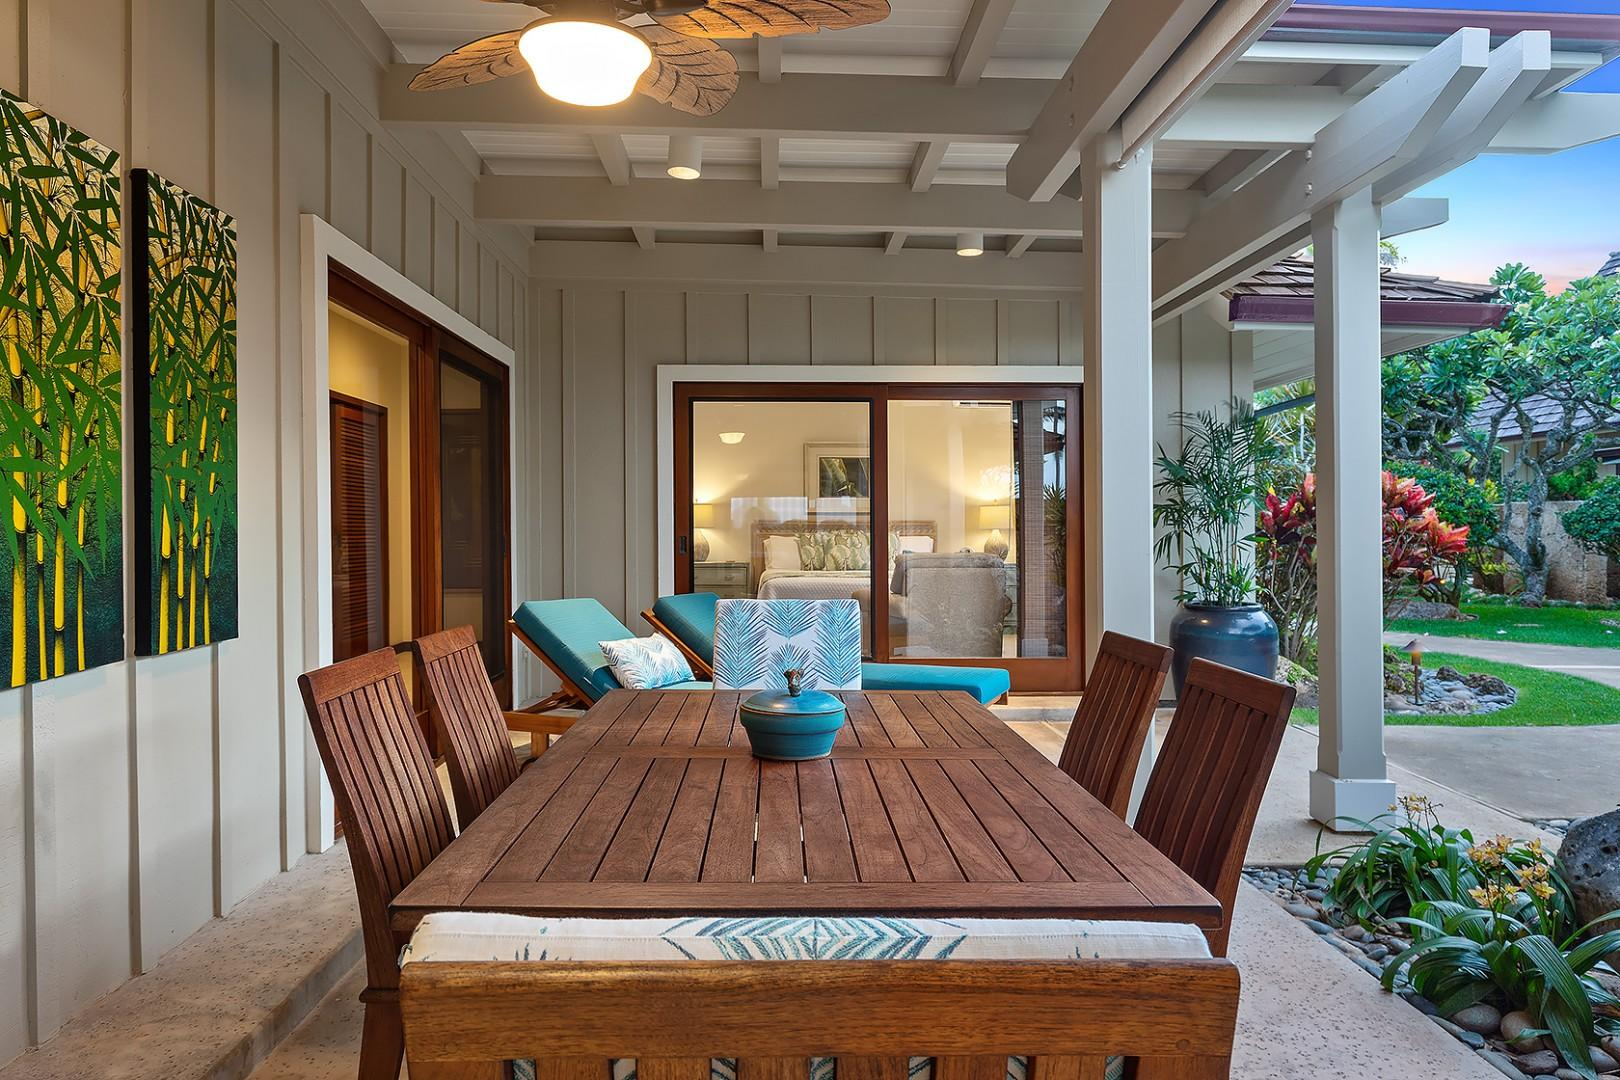 Beach House - Outdoor Dining